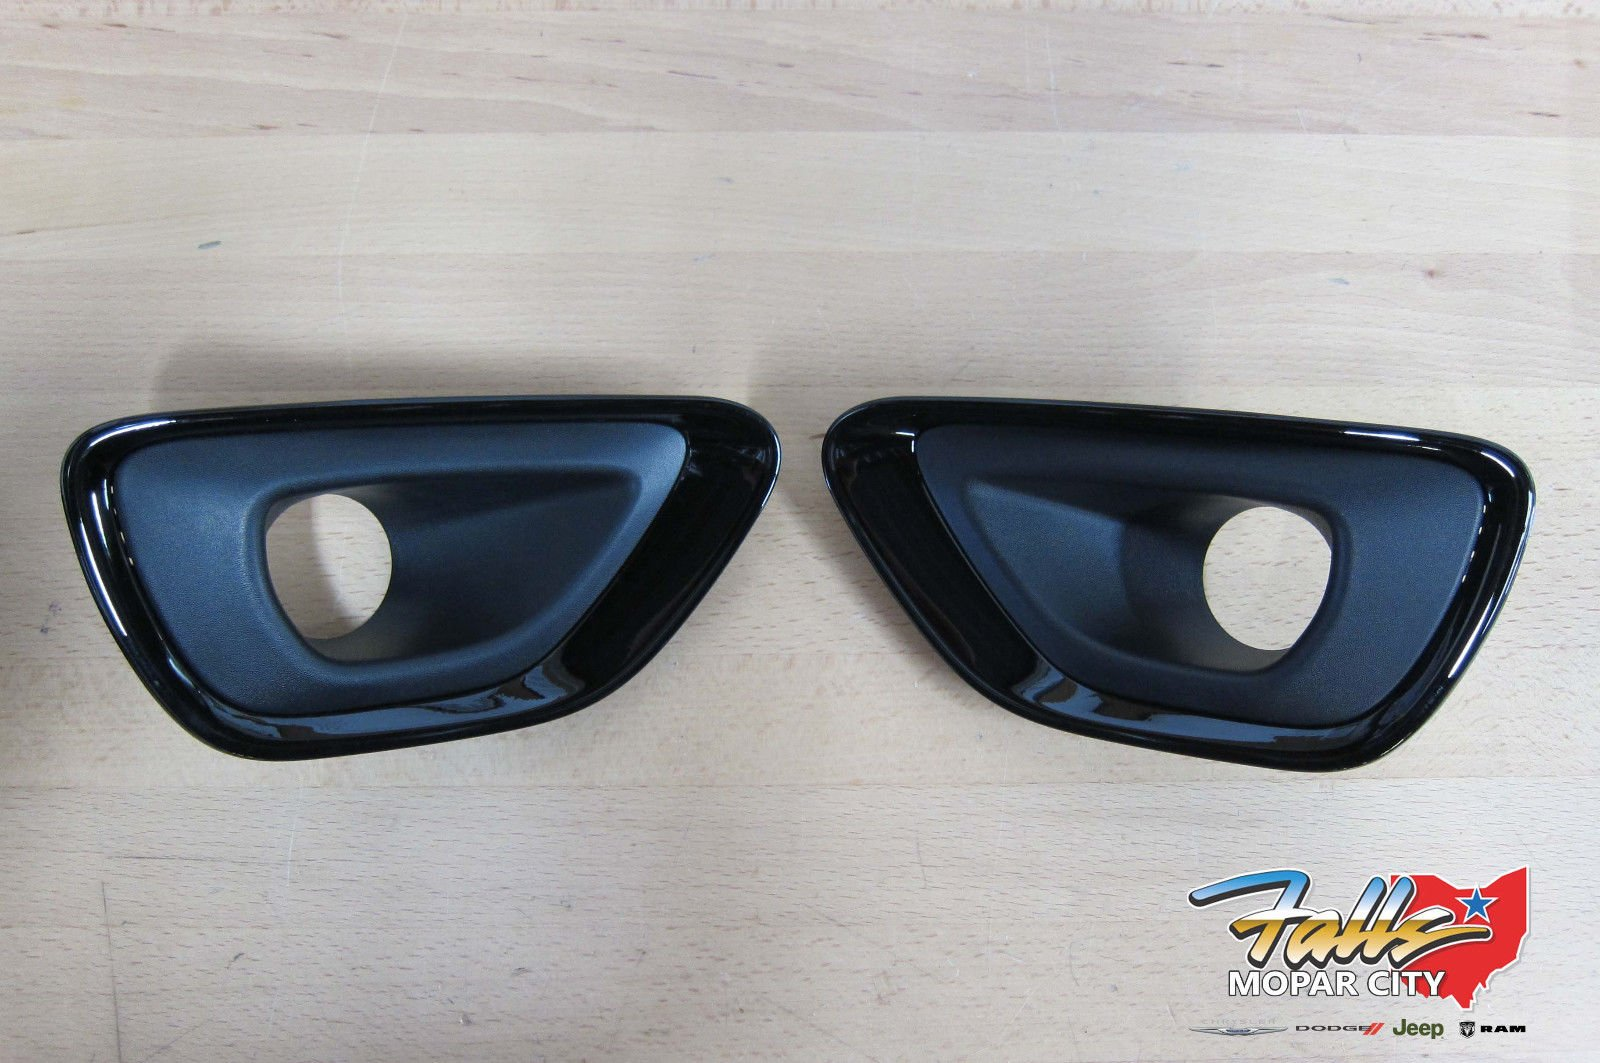 Jeep Grand Cherokee Altitude Black Fog Lamp Bezels Mopar OEM by Mopar